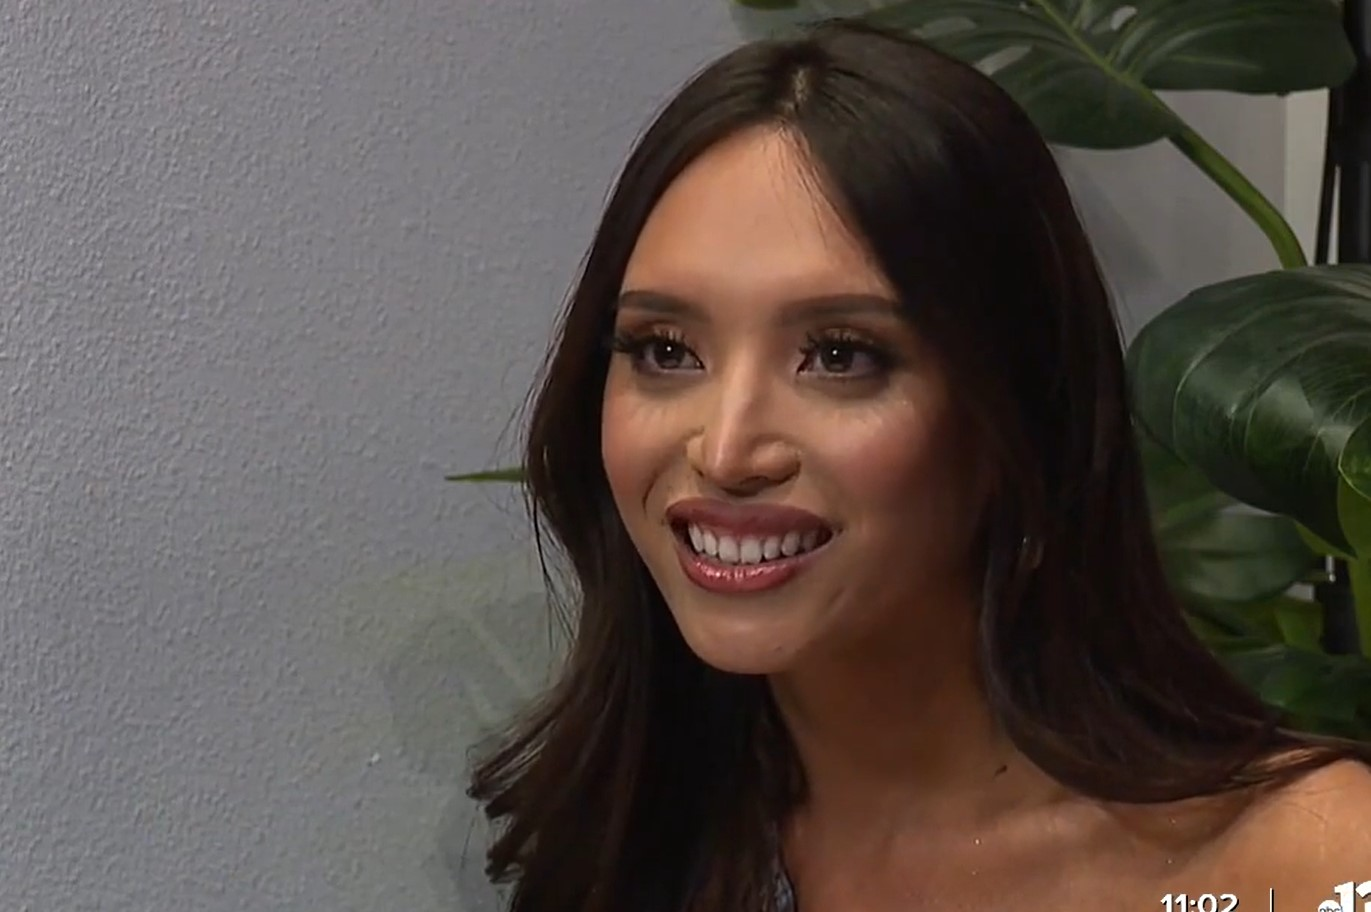 Kataluna Enriquez will be the first trans woman will compete in Miss USA pageant